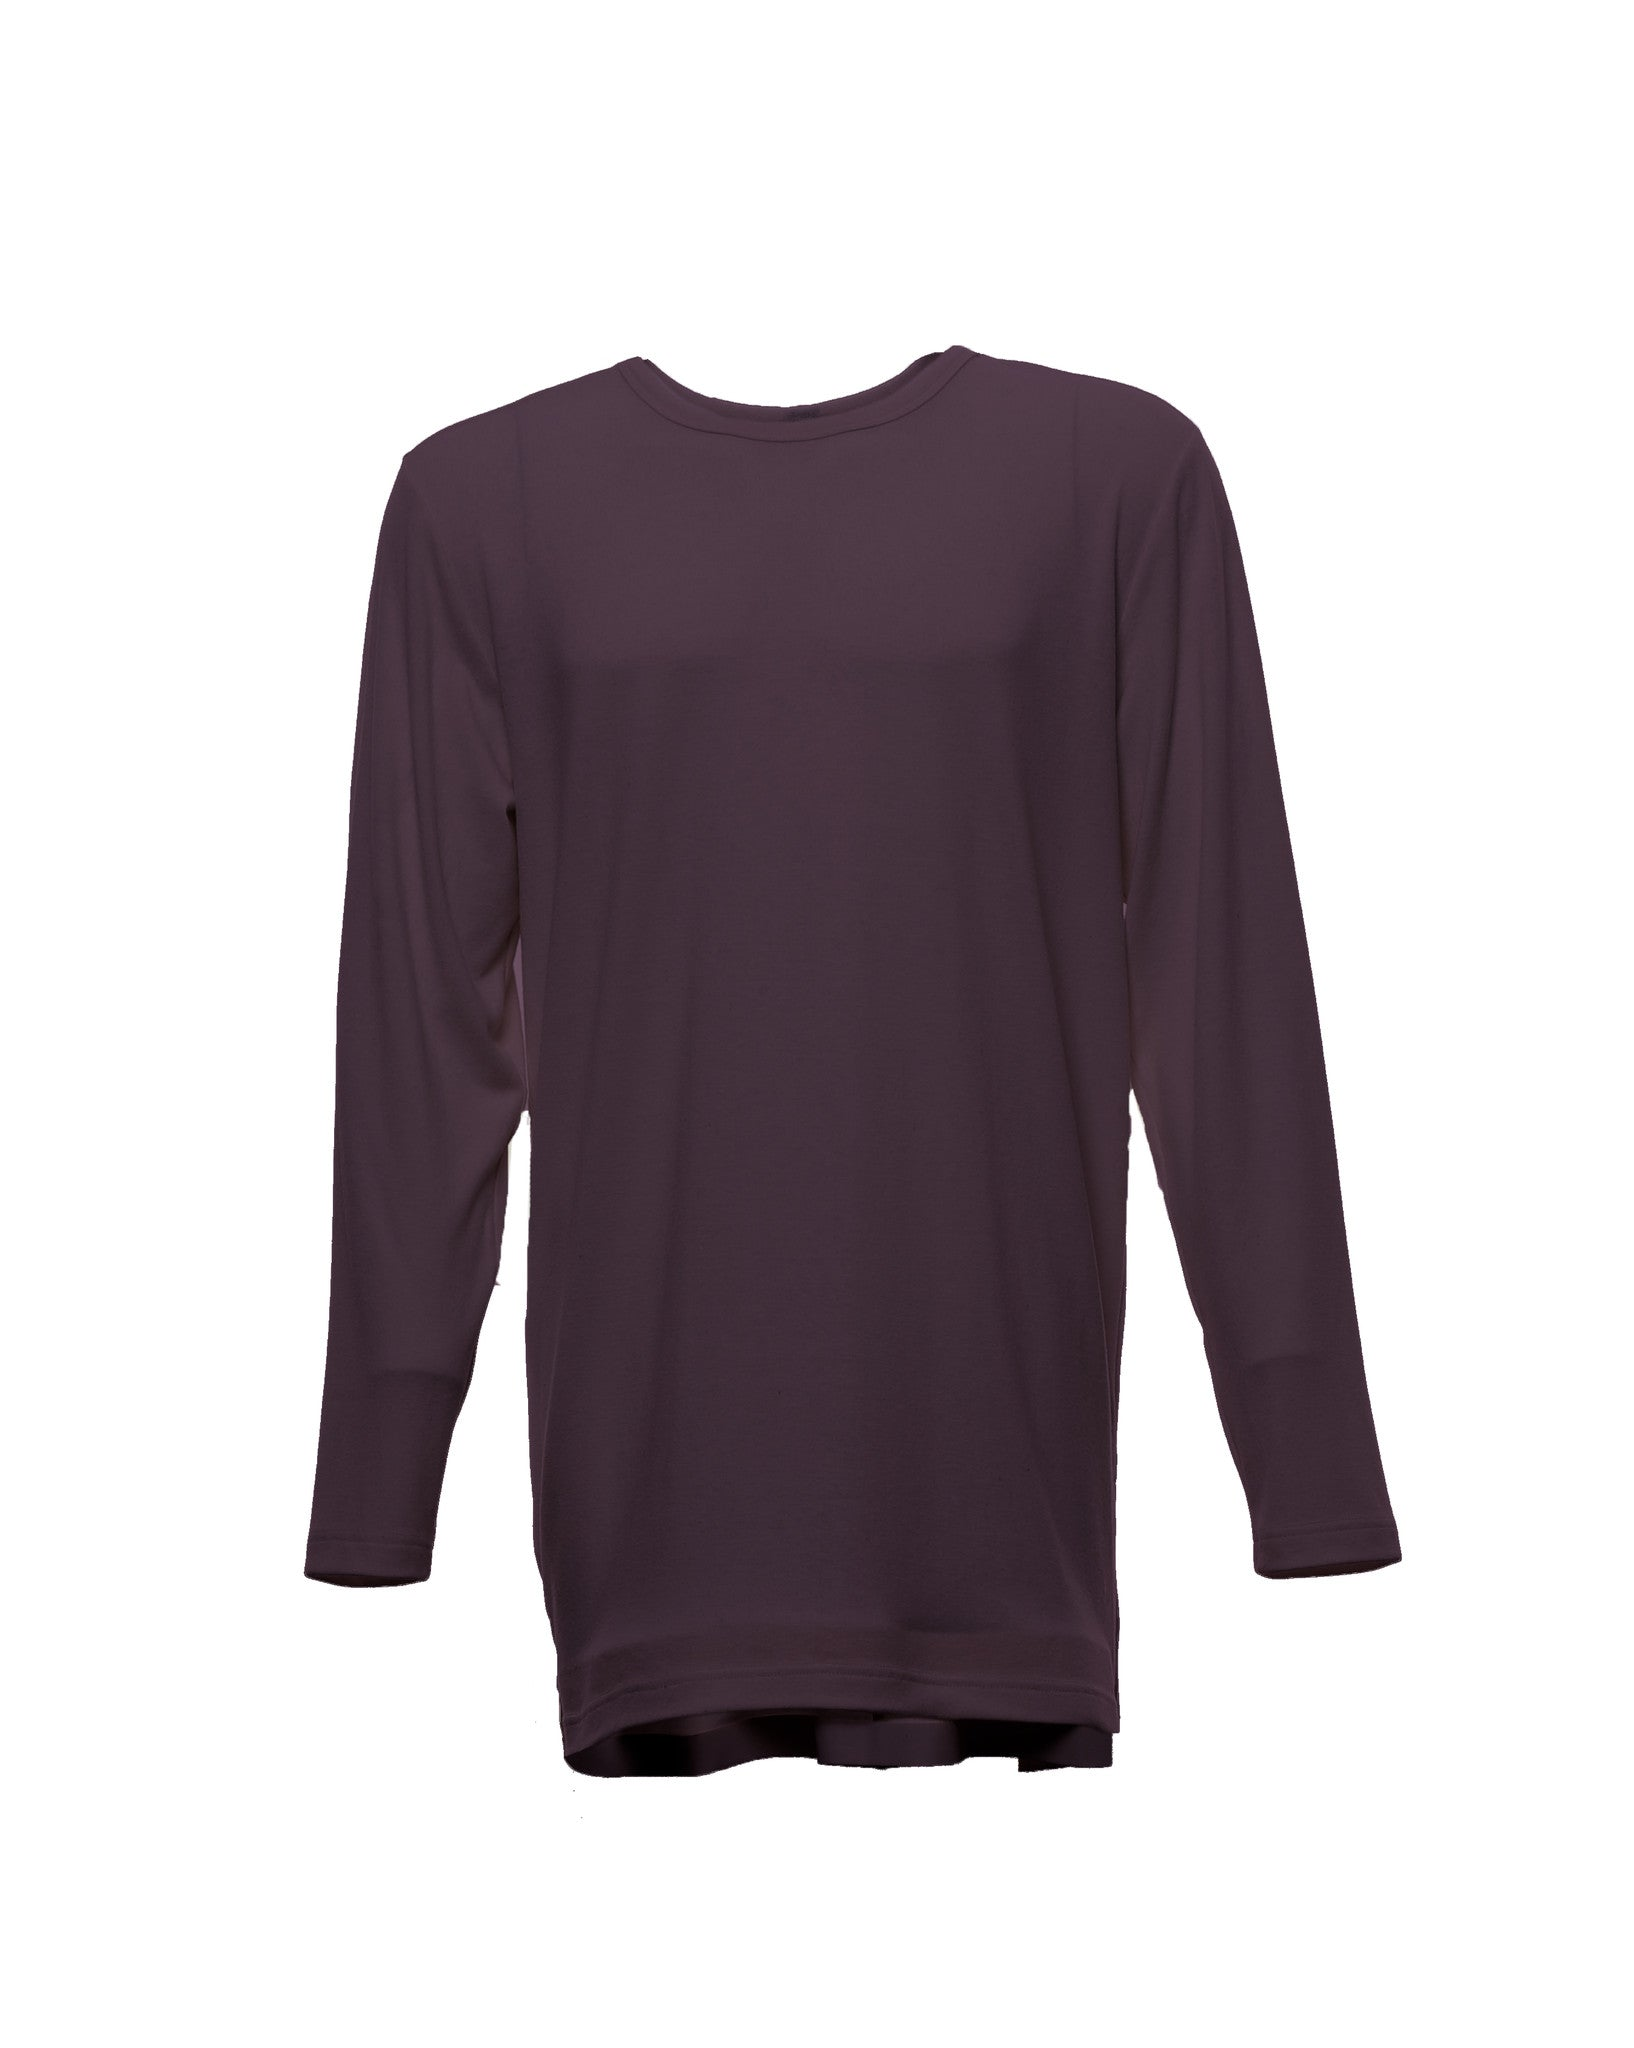 Surge Seam Top in Aubergine